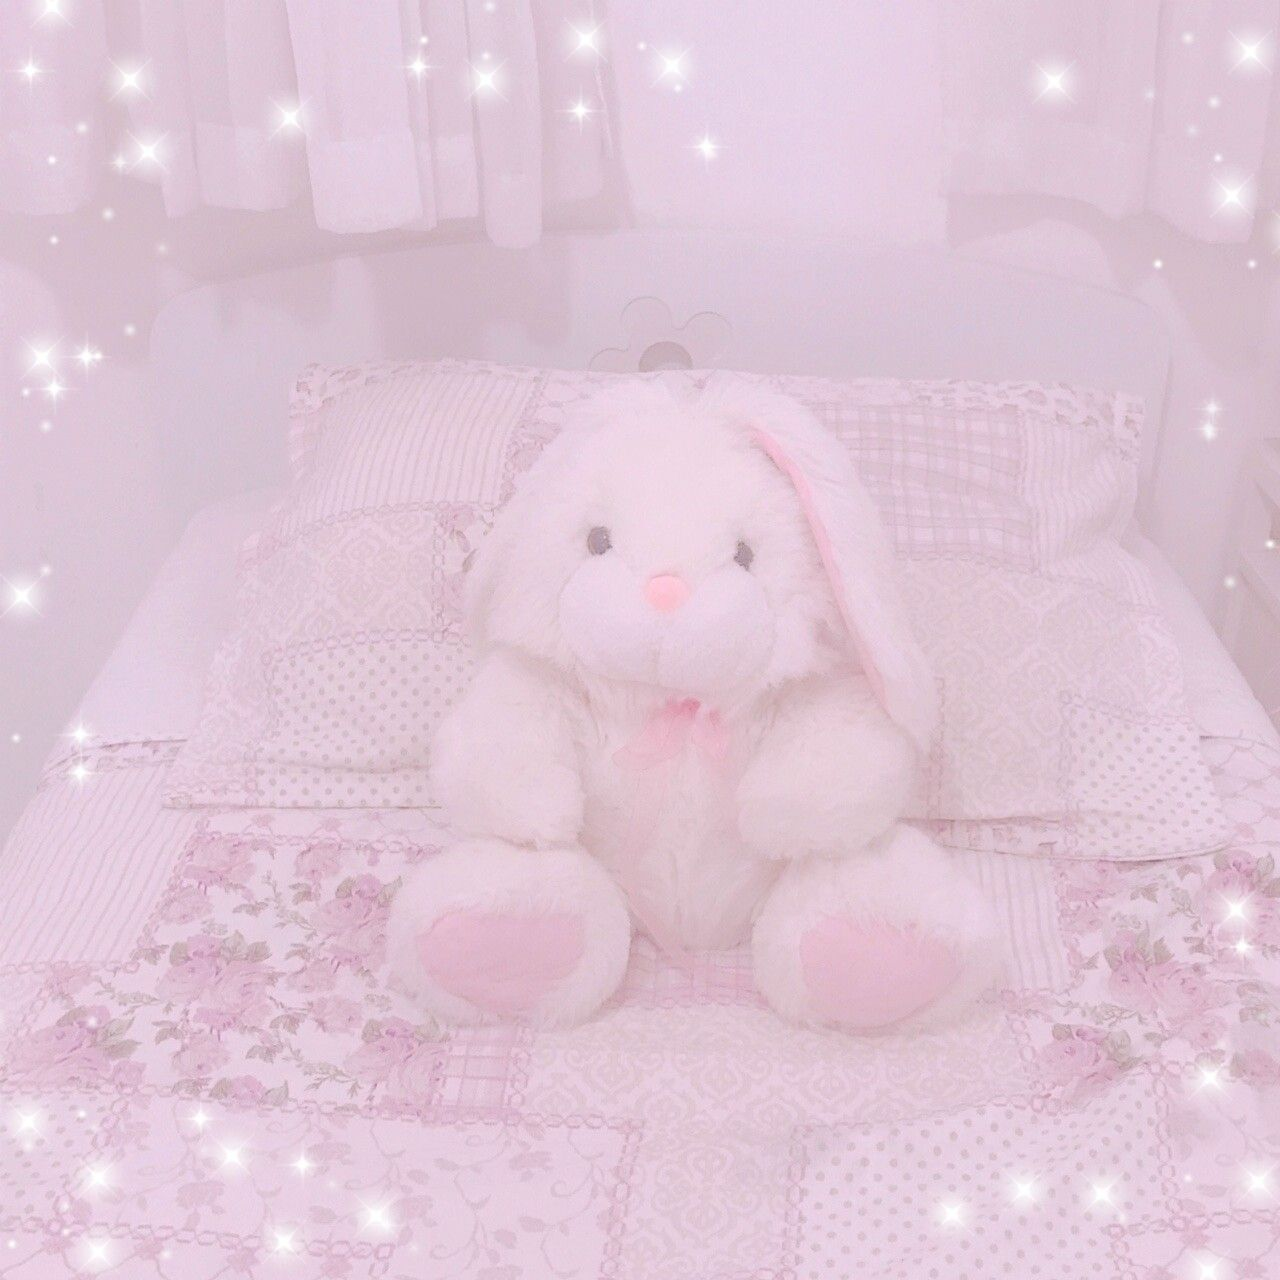 Pin By Ri On P In 2020 Baby Pink Aesthetic Pastel Pink Aesthetic Pink Aesthetic